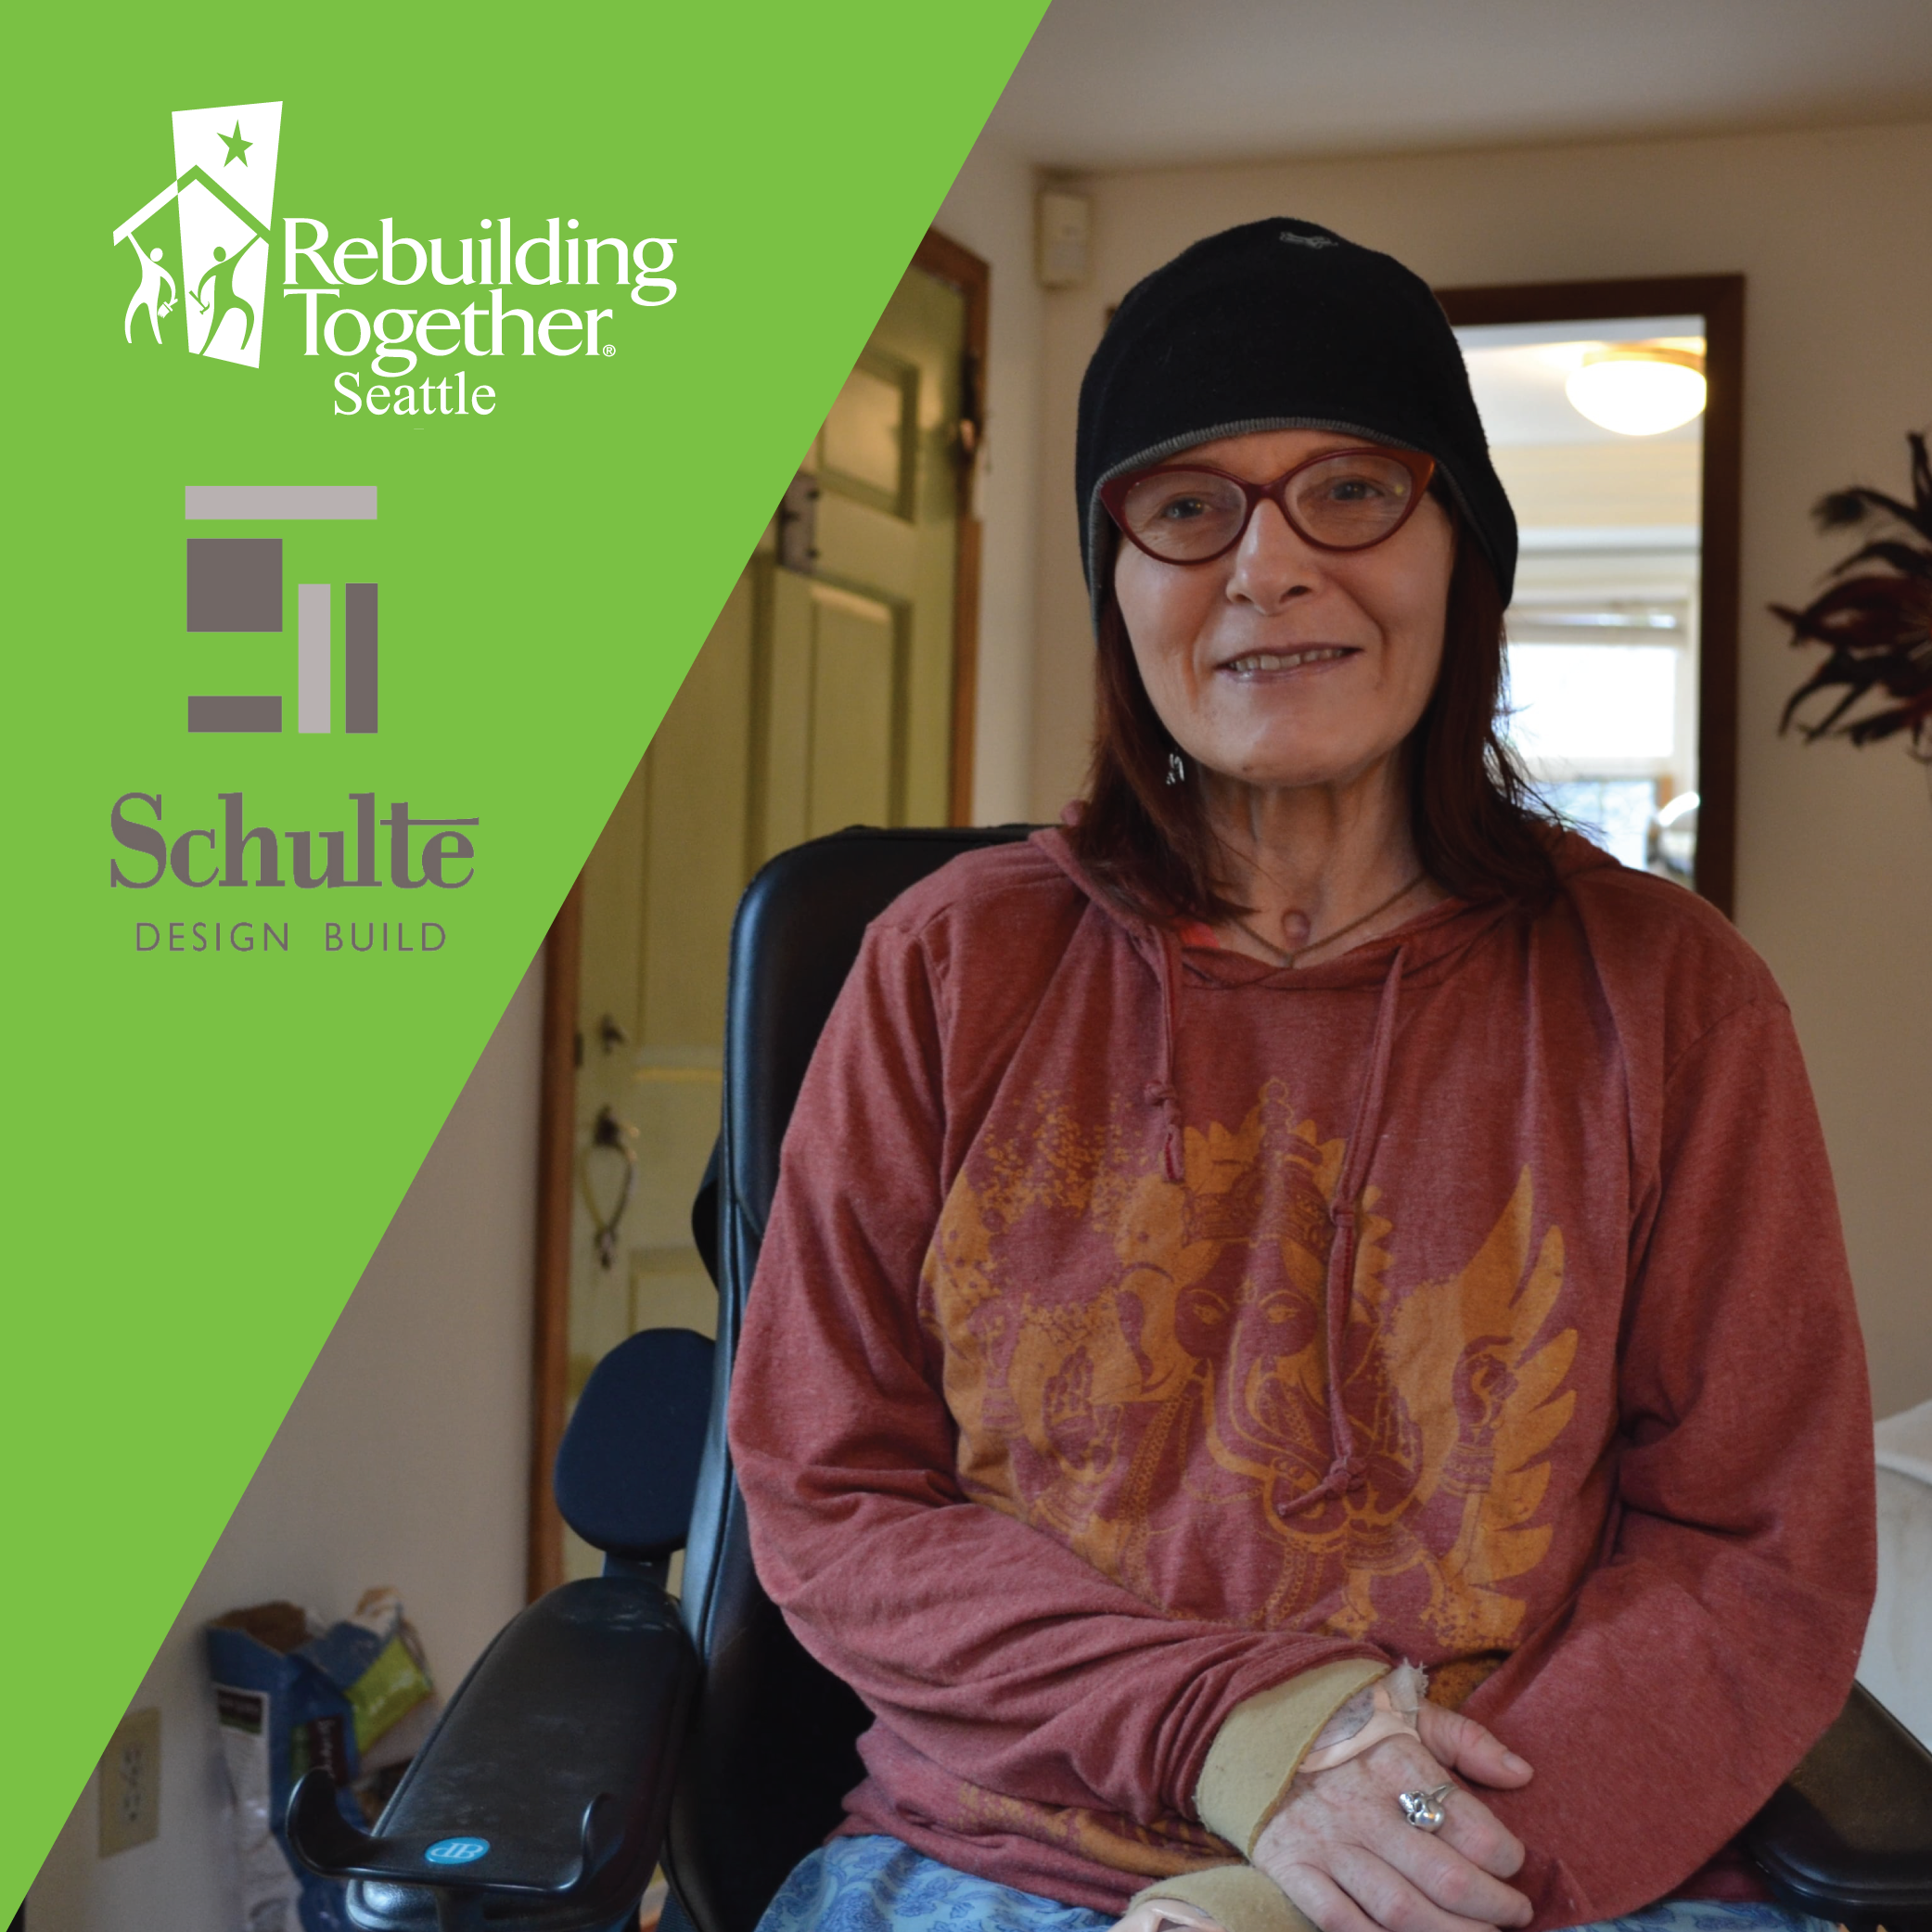 Rebuilding Together Seattle's Photo